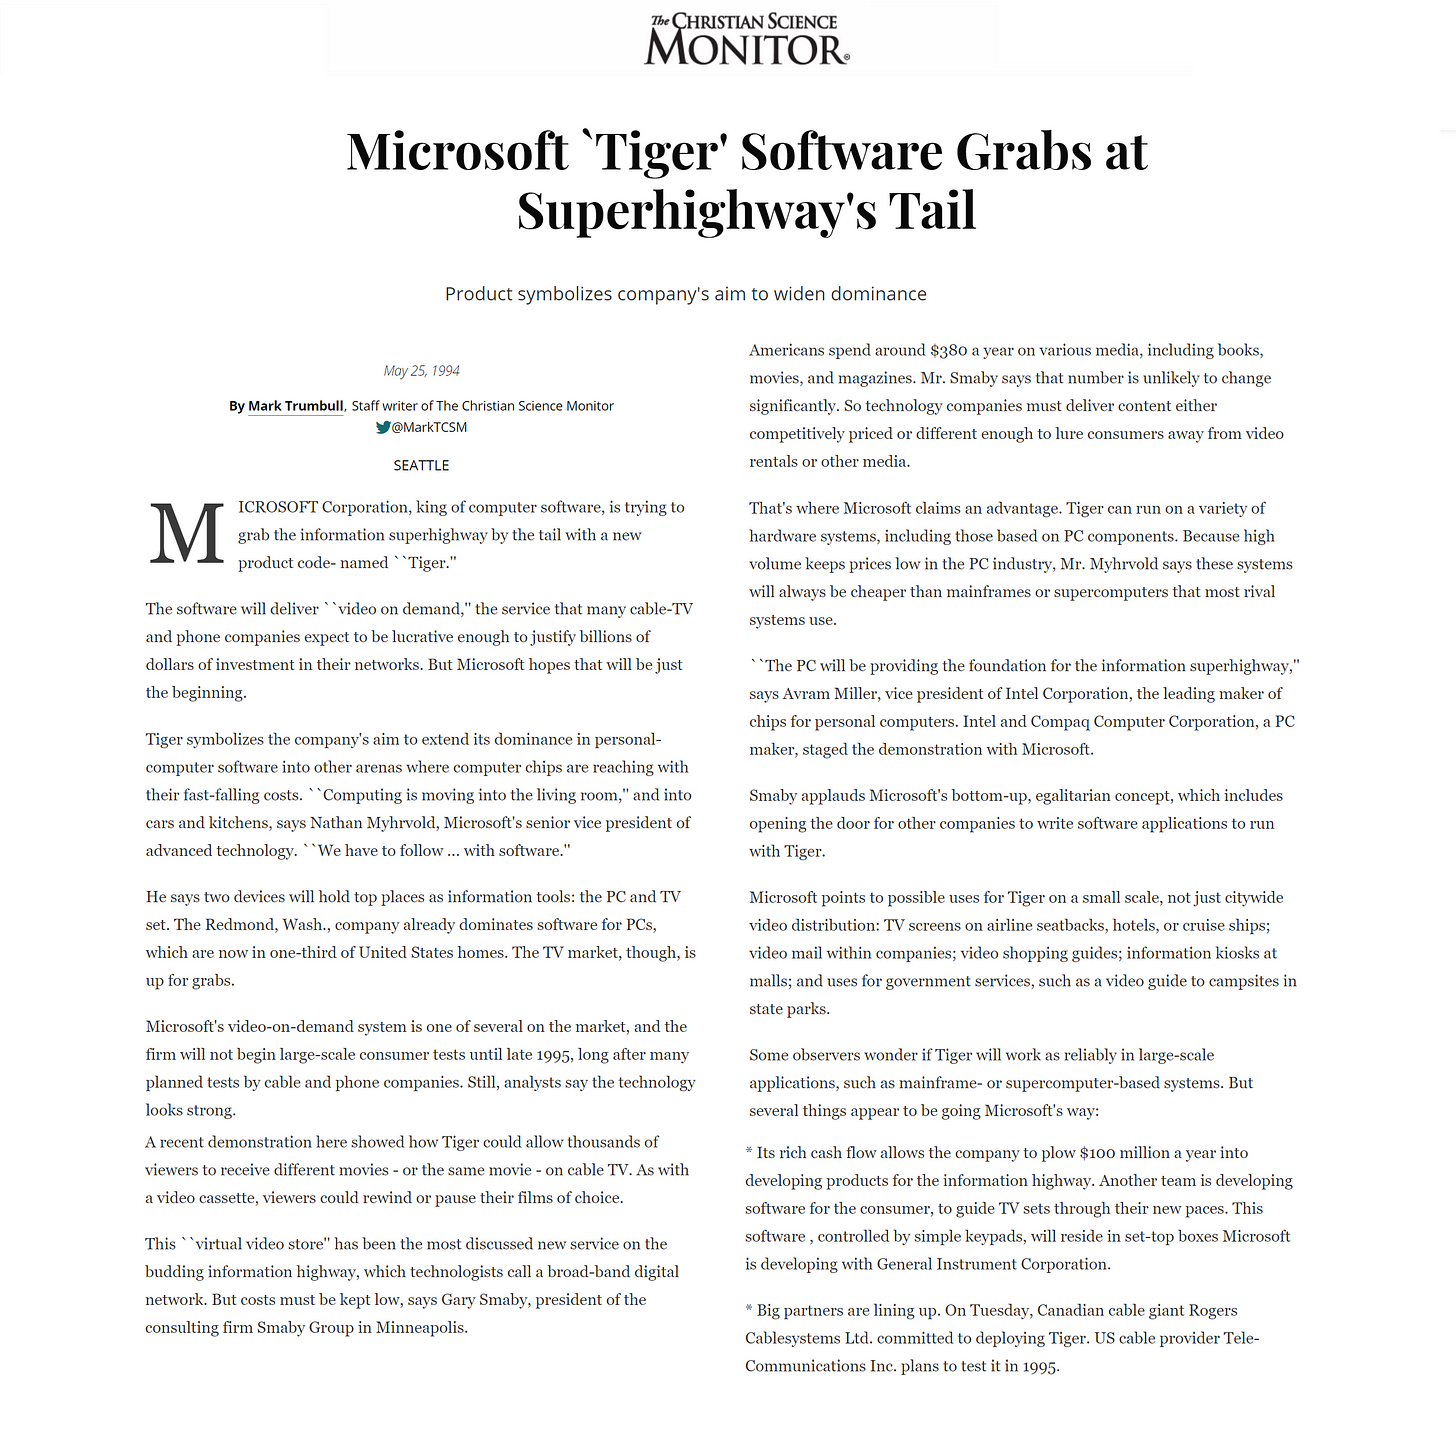 Microsoft 'Tiger' Software grabs at Superhighway's Tail - article from Christian Science Monitor